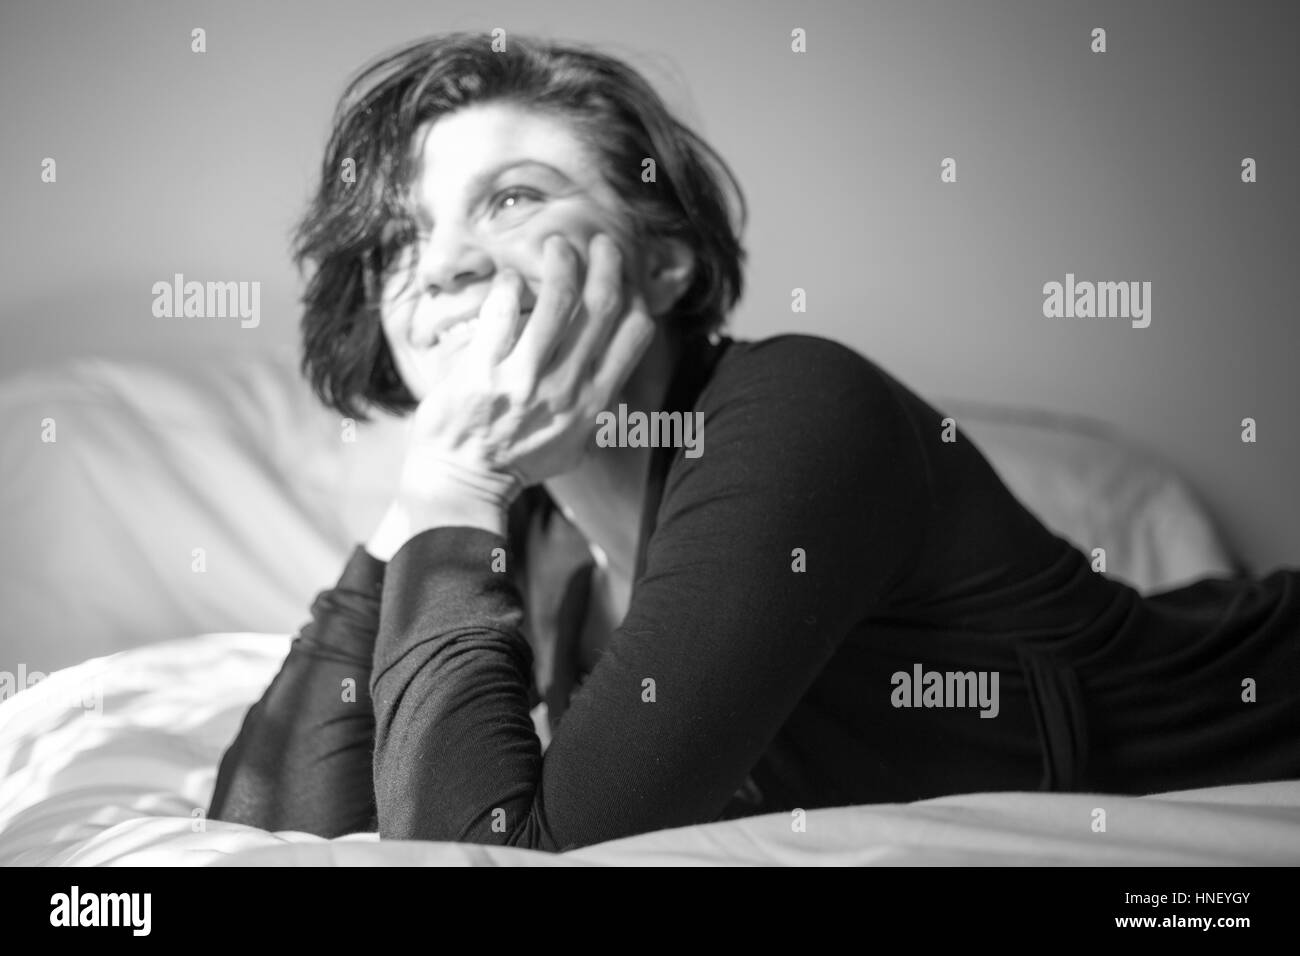 Unfocused shot of a smiling woman in black and white - Stock Image